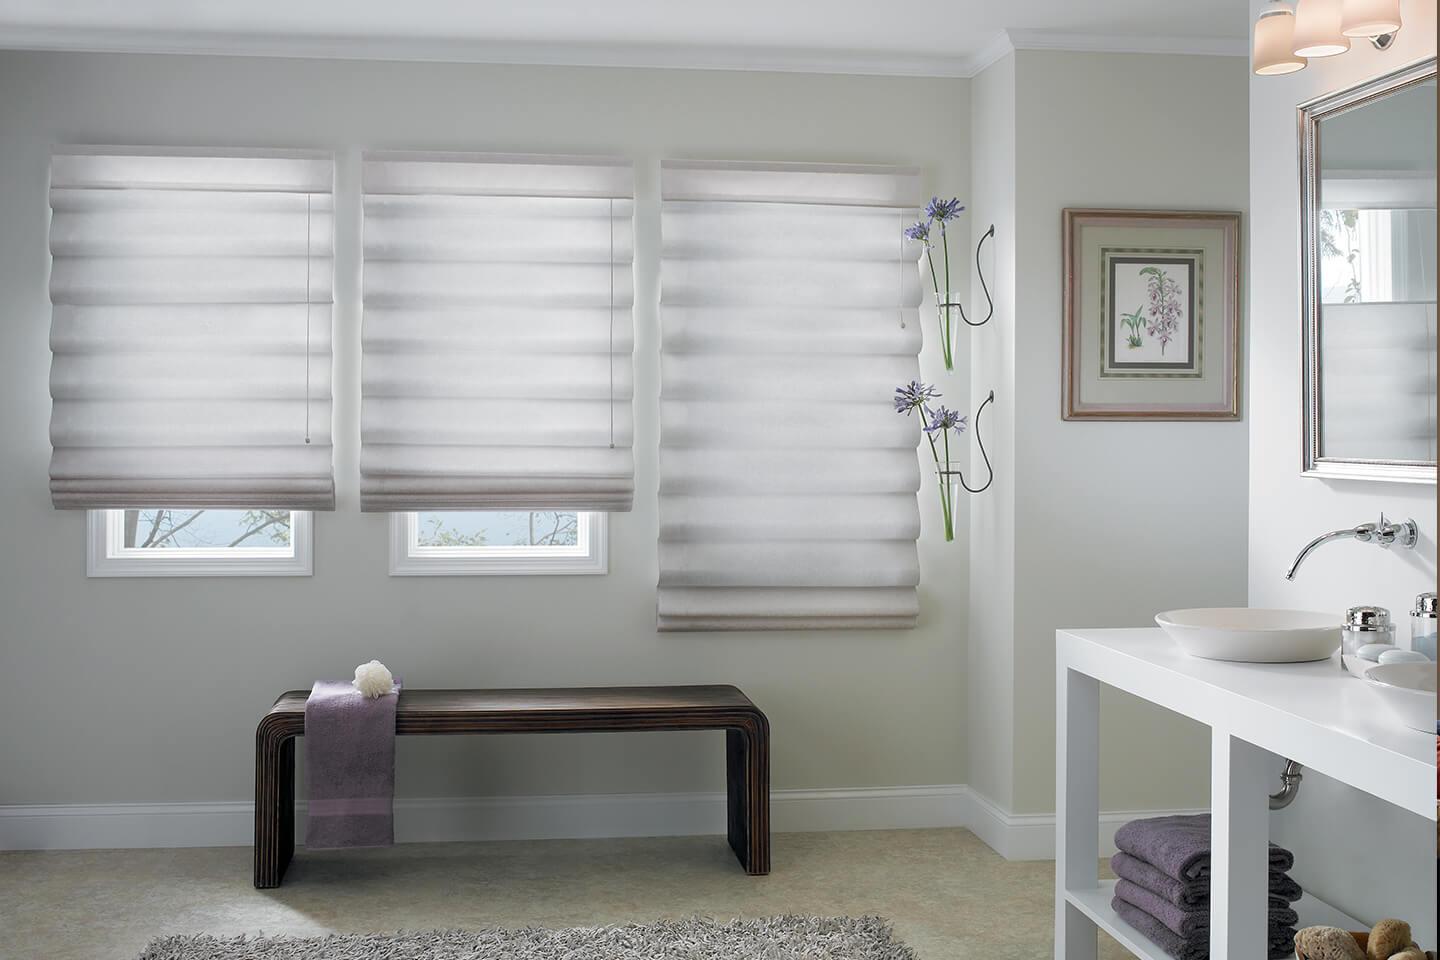 Shop Classic Roman Shades Costco Bali Blinds And Shades